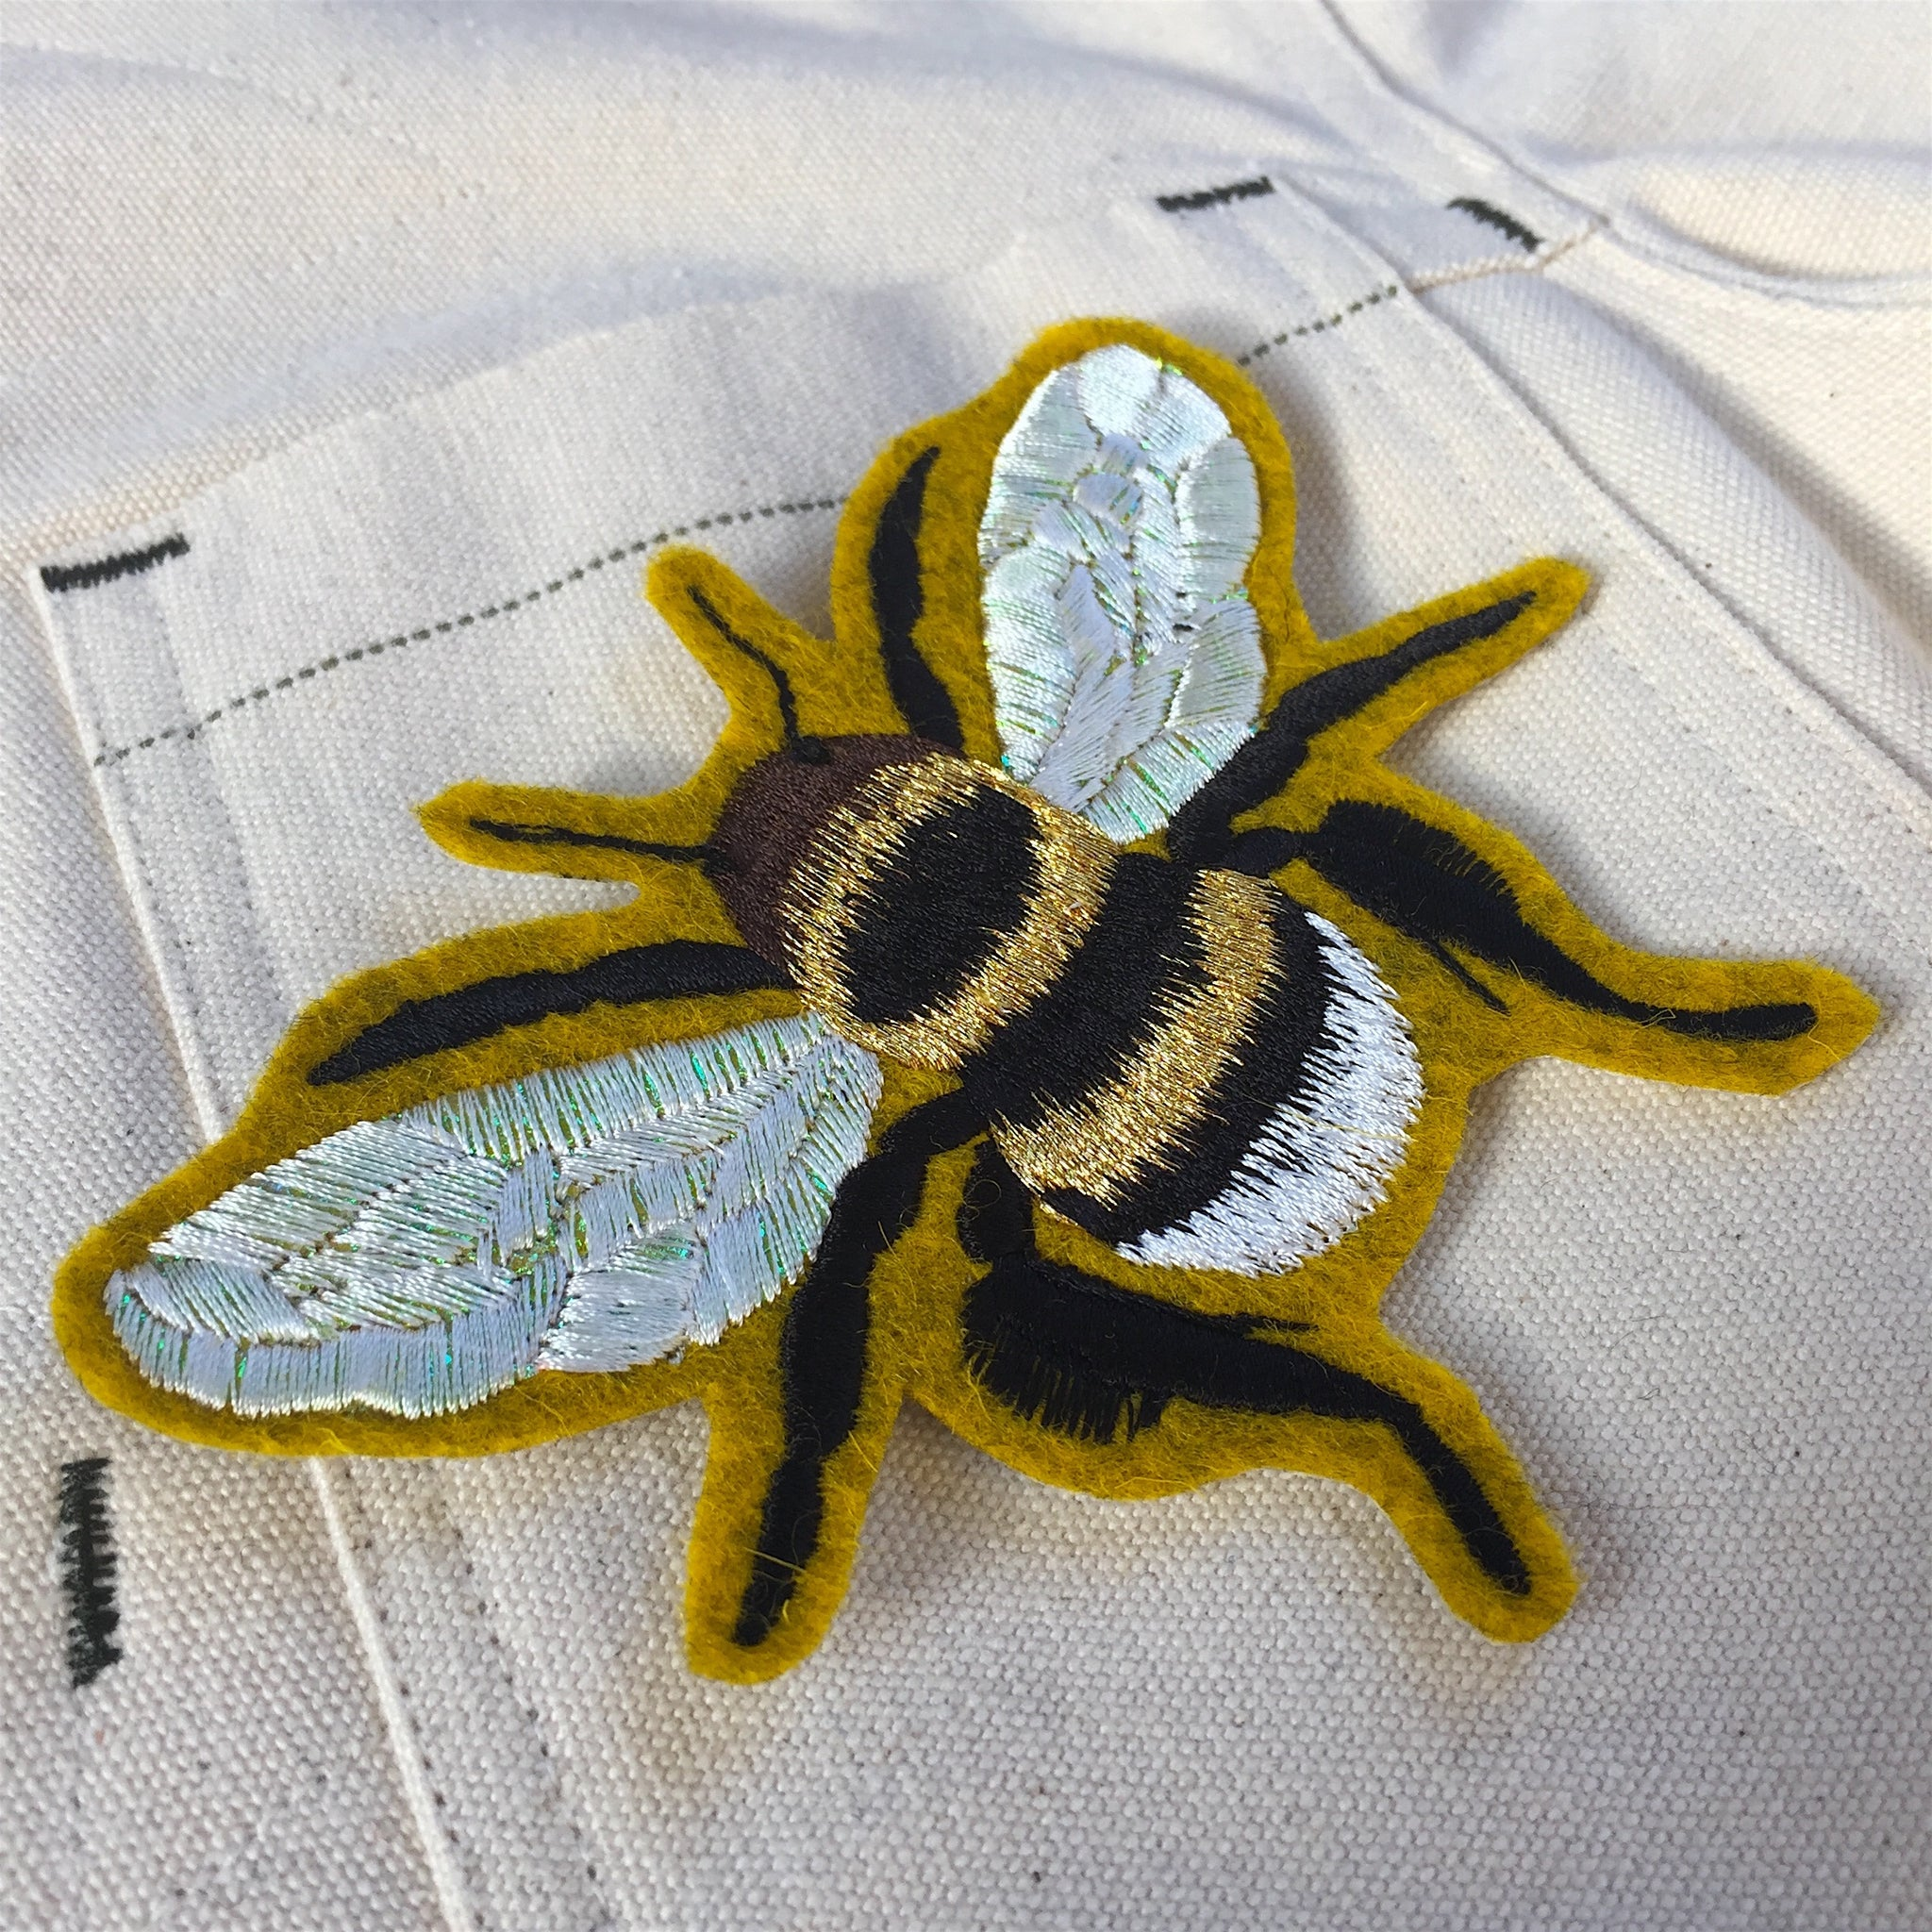 Iridescent bee on yellow embroidered patch. 033 - Ltd Edition.